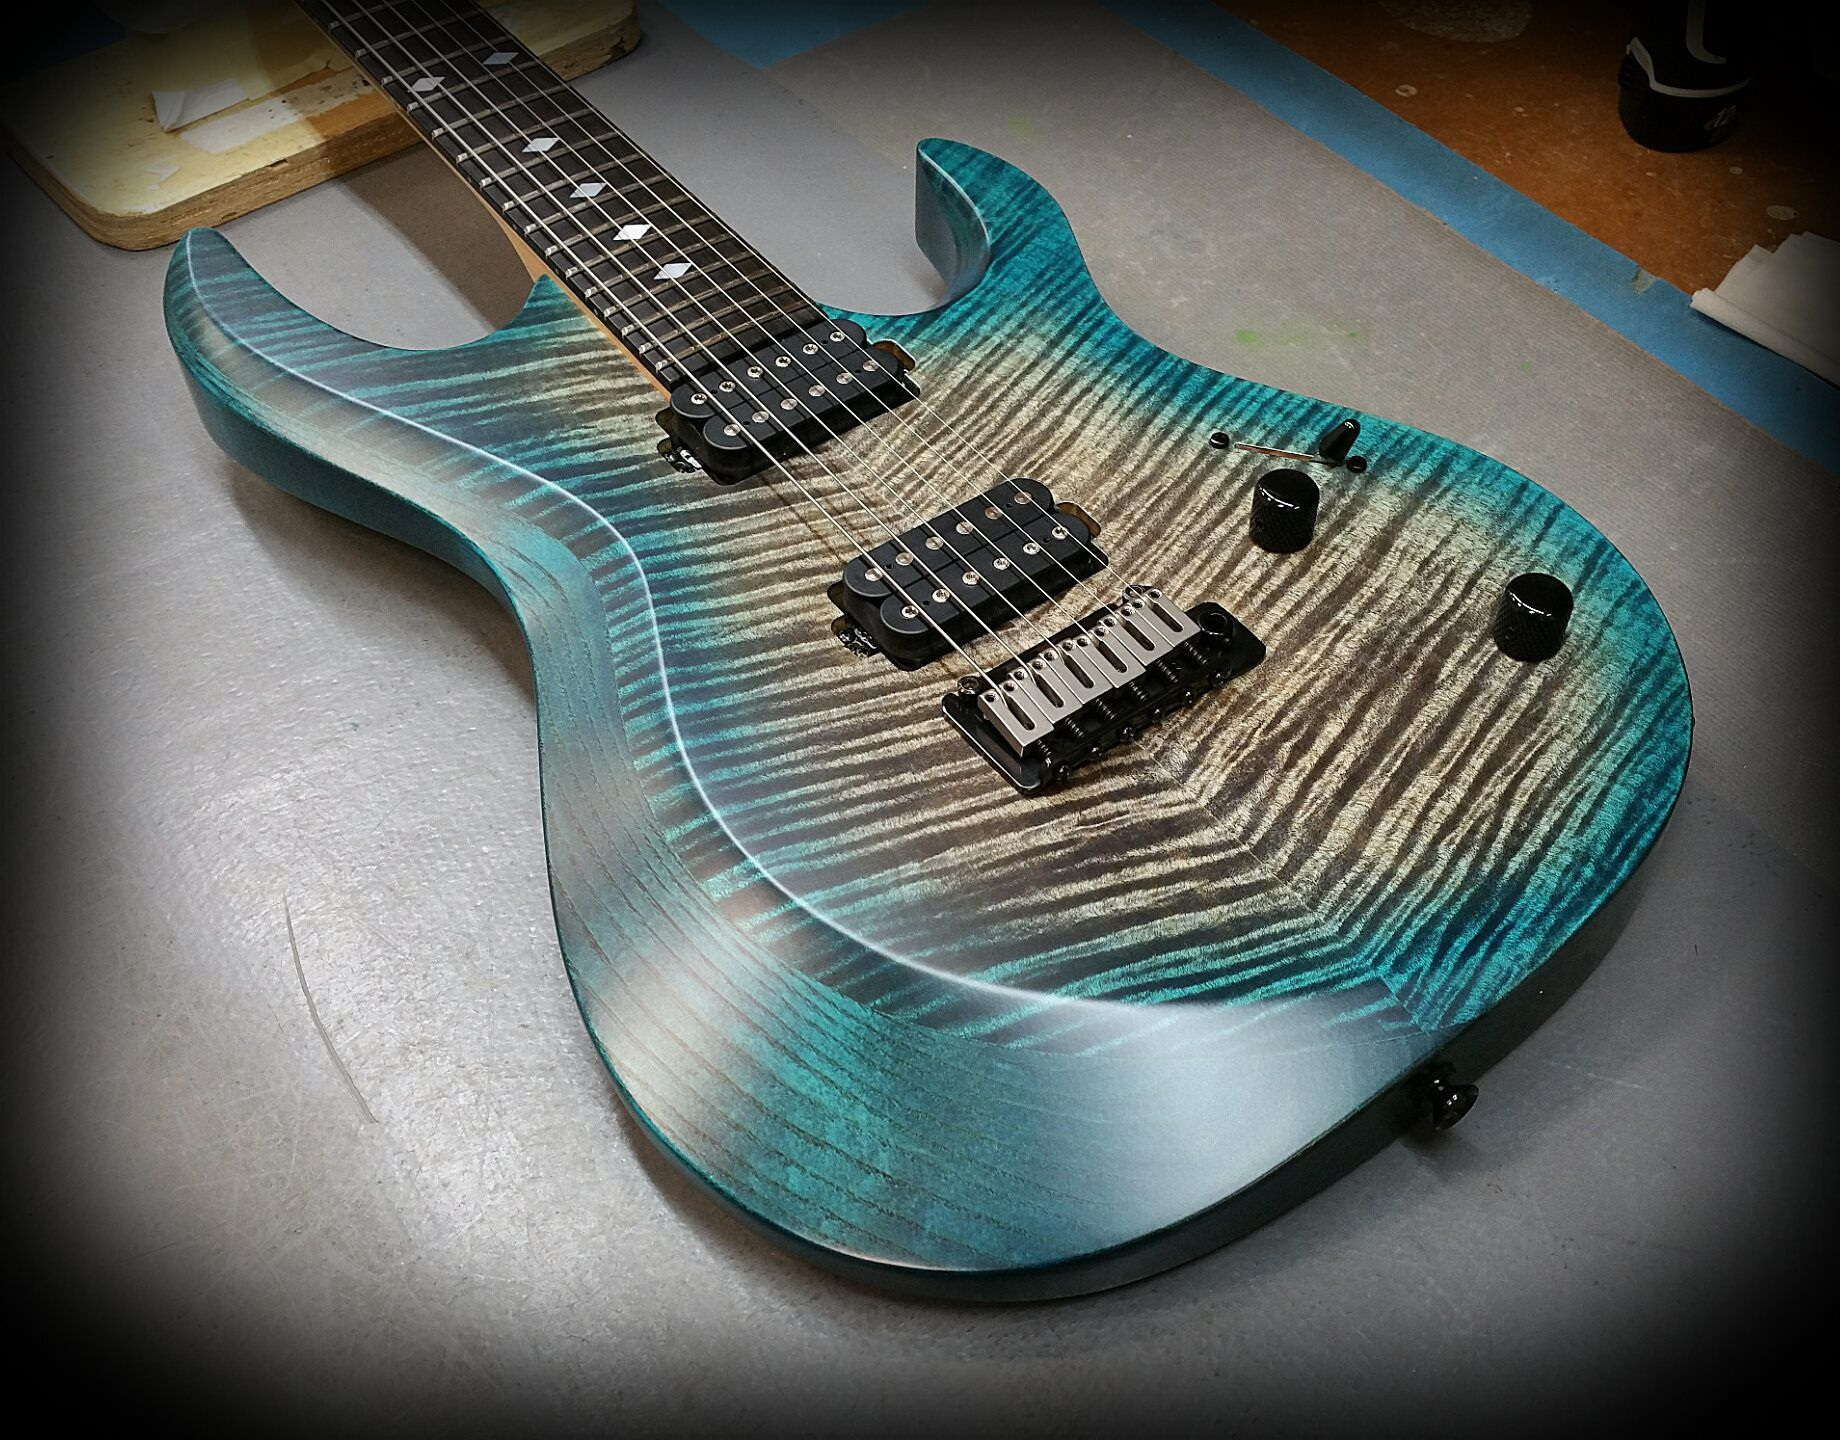 Kiesel A6 (Aries Model) Aqua Caliburst over flamed maple top with Kiesel Lithium Pick ups and vintage trem